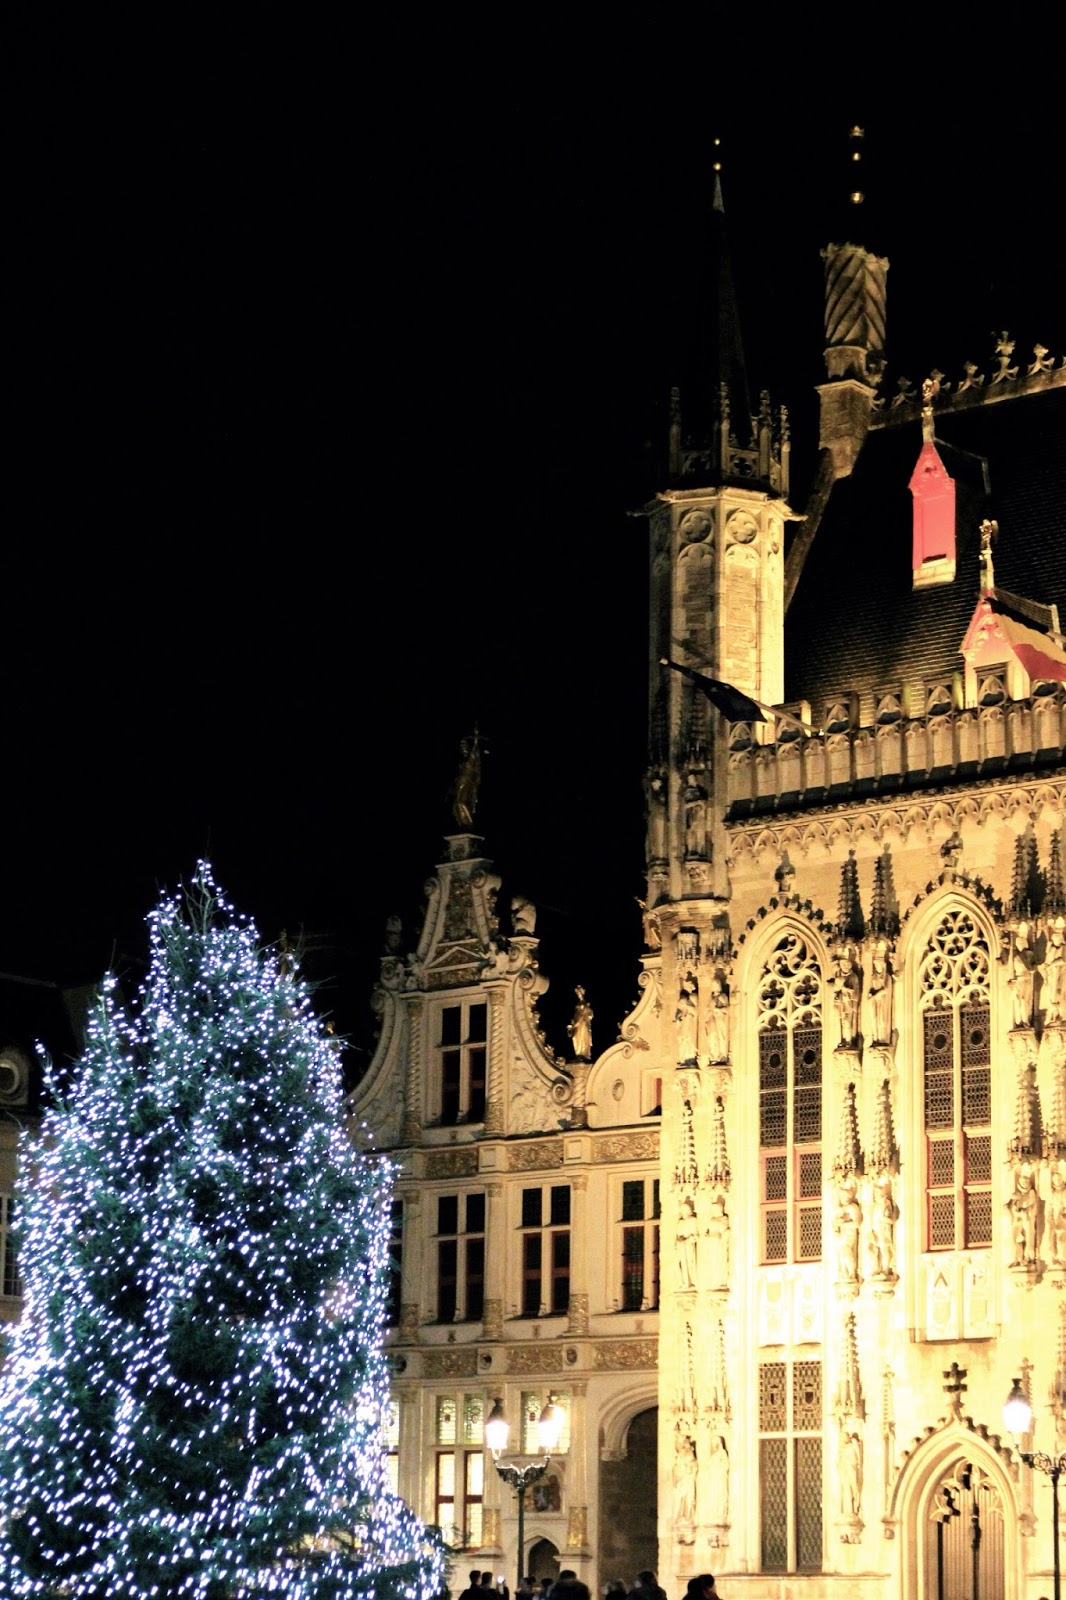 Bruges architecture at night during Christmas